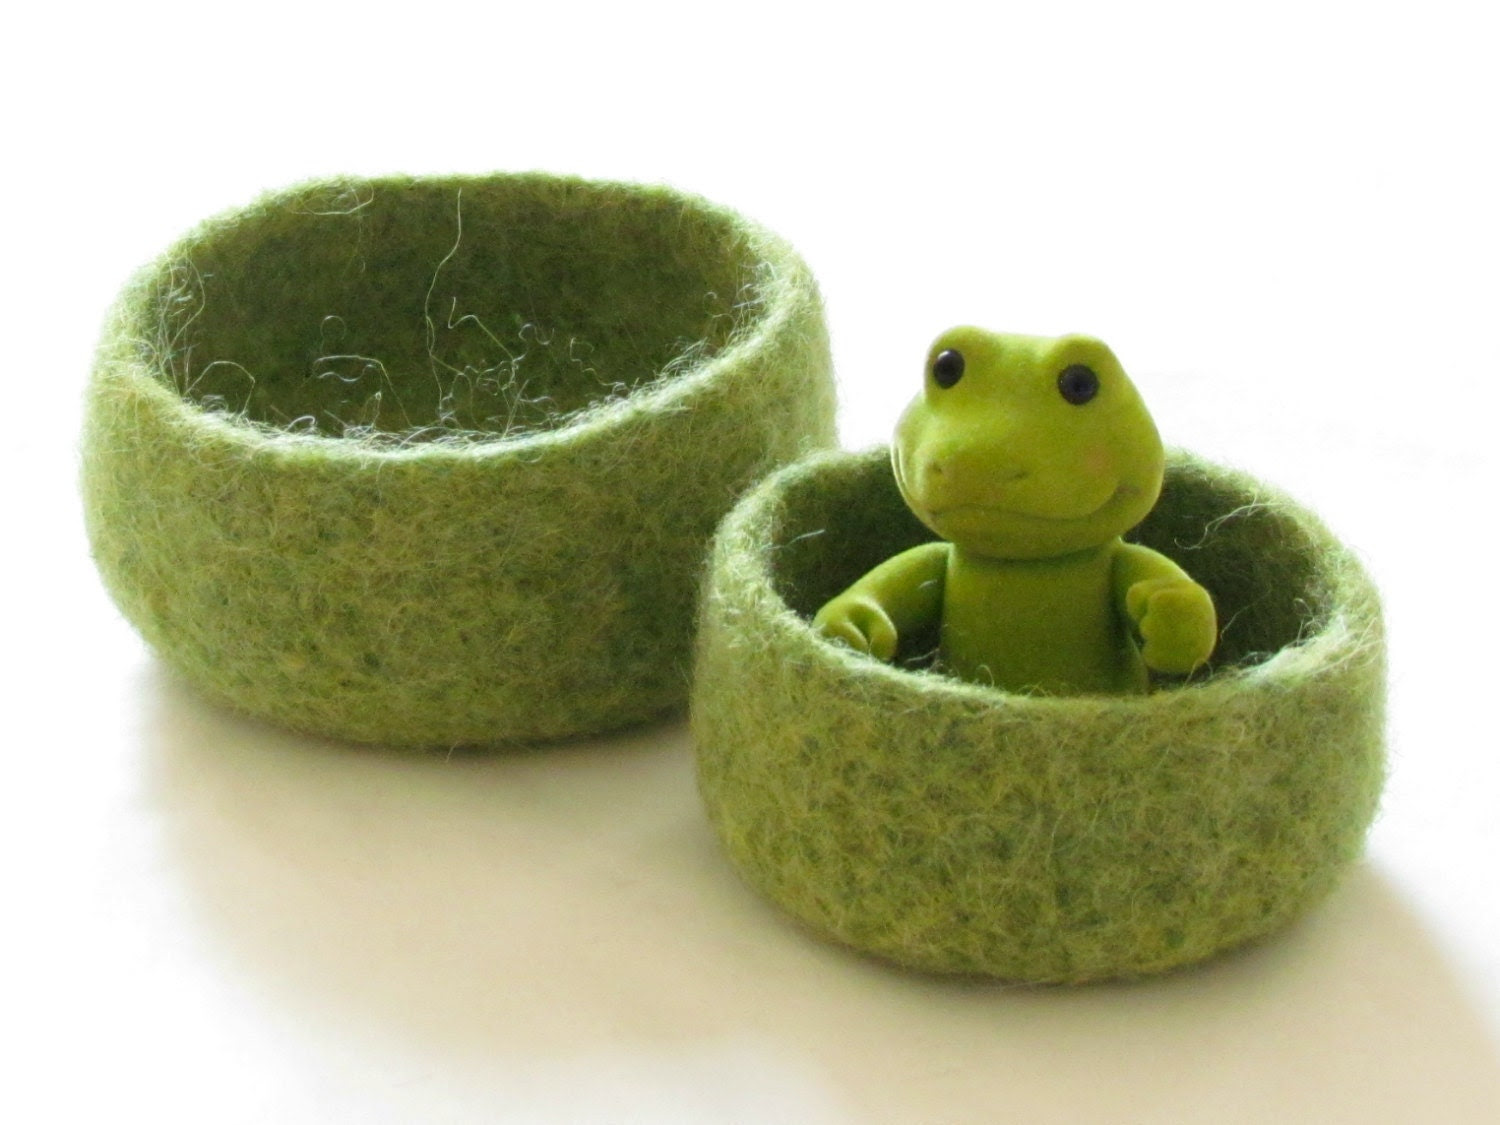 Green Felted bowl  - Cozy gift - waldorf toy -  Set of two nesting bowls - theYarnKitchen